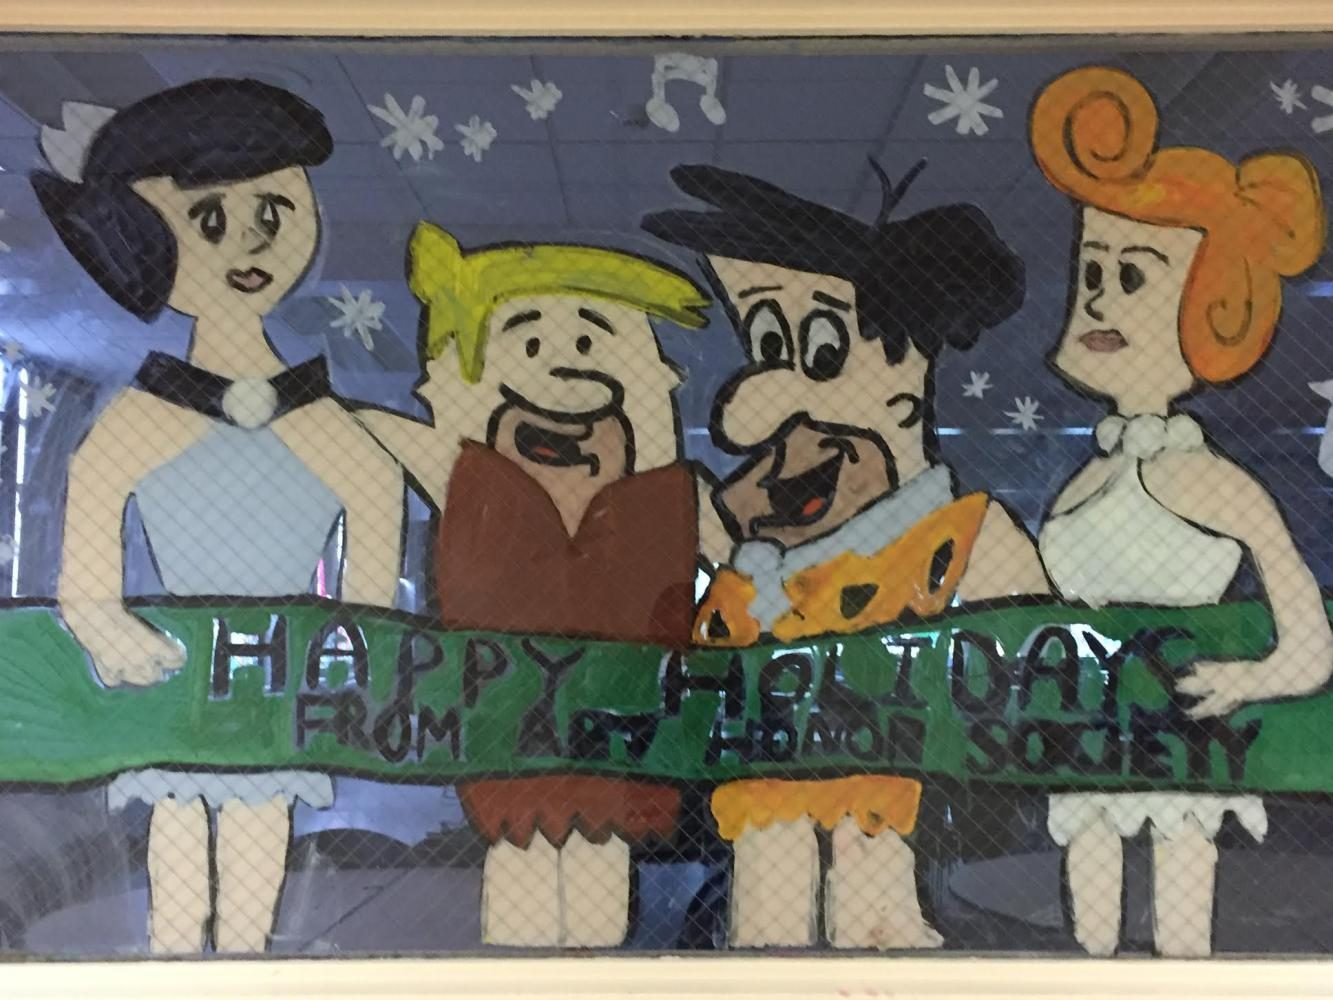 Representatives+from+the+Art+Honors+Society+illustrate+characters+from+The+Flintstones+for+the+holiday+window+painting+event.